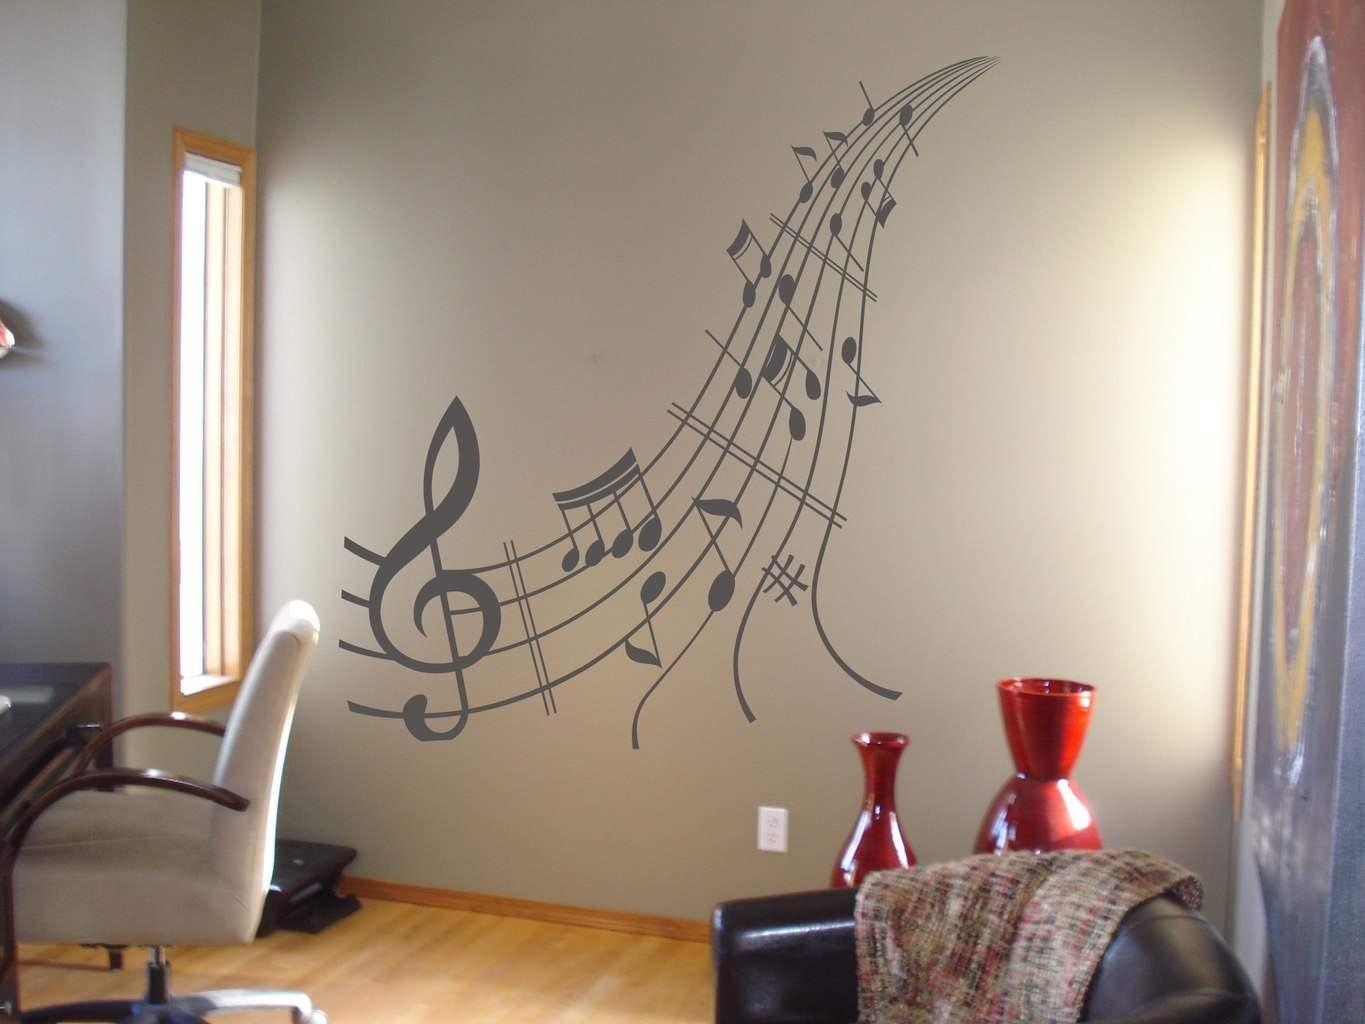 Music Notes Wall Art Decal | Music Wall Decal Sticker With Music Notes Wall Art Decals (Image 8 of 20)